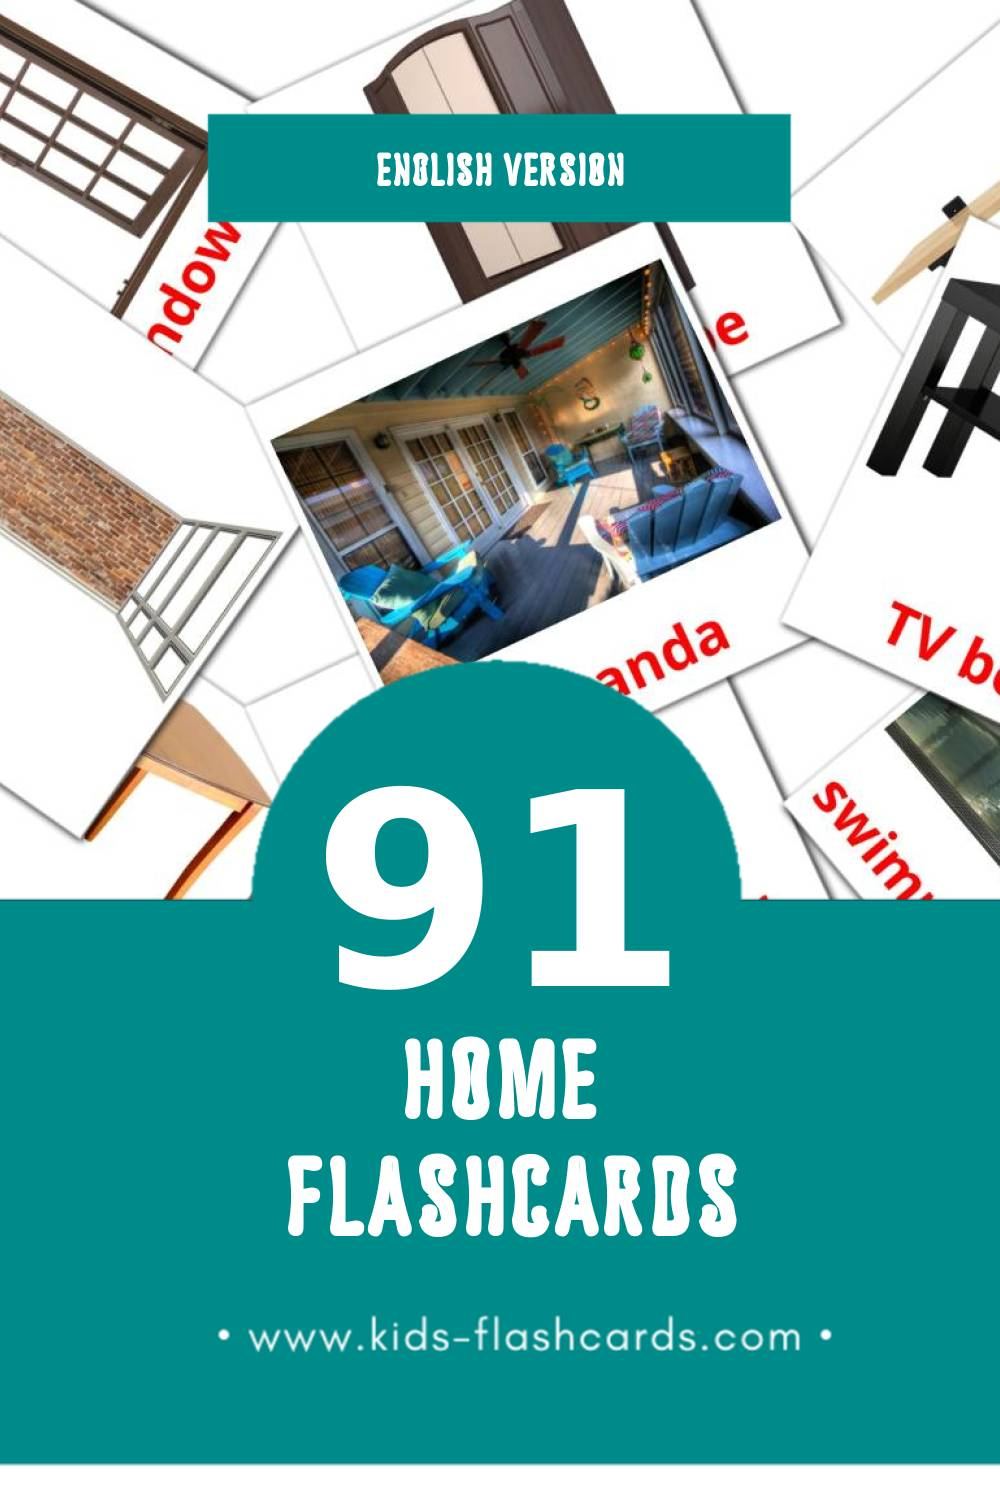 Visual Home Flashcards for Toddlers (74 cards in English)